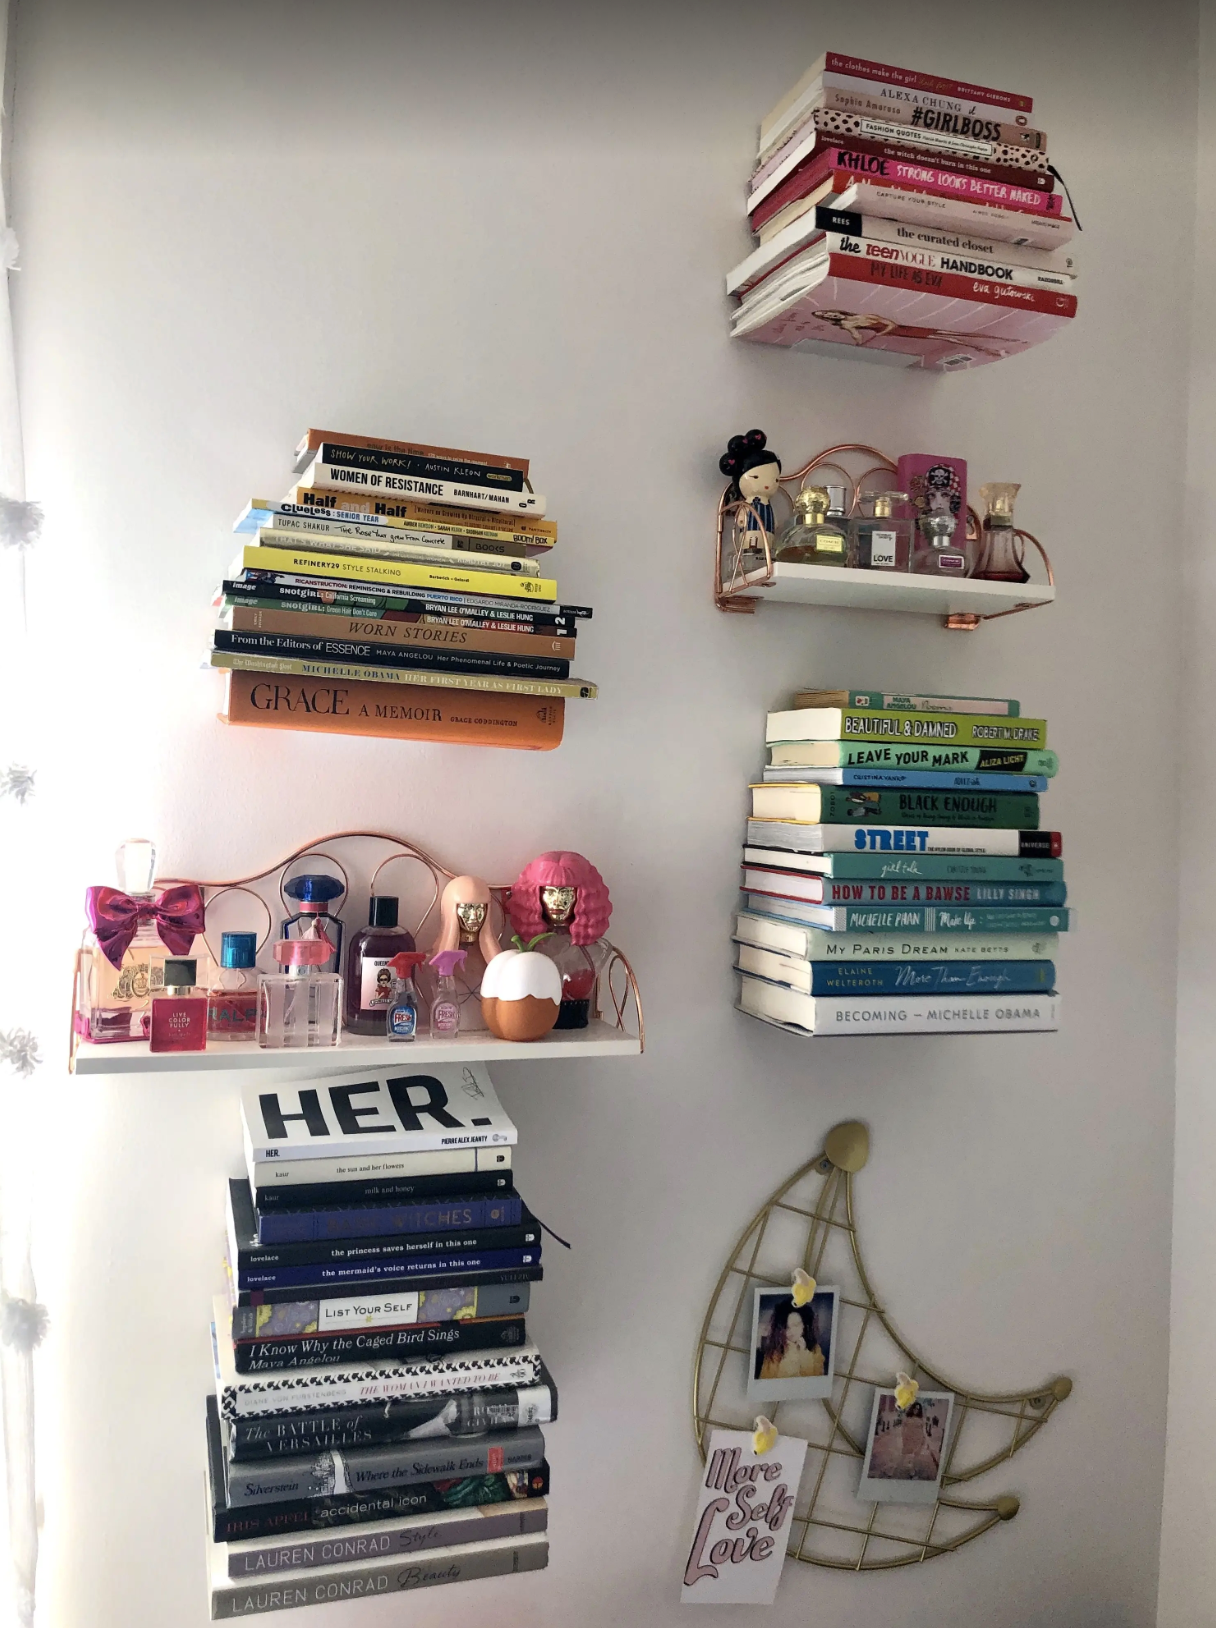 Several floating bookshelves with books stacked by color on BuzzFeed editor Kayla Boyd's wall